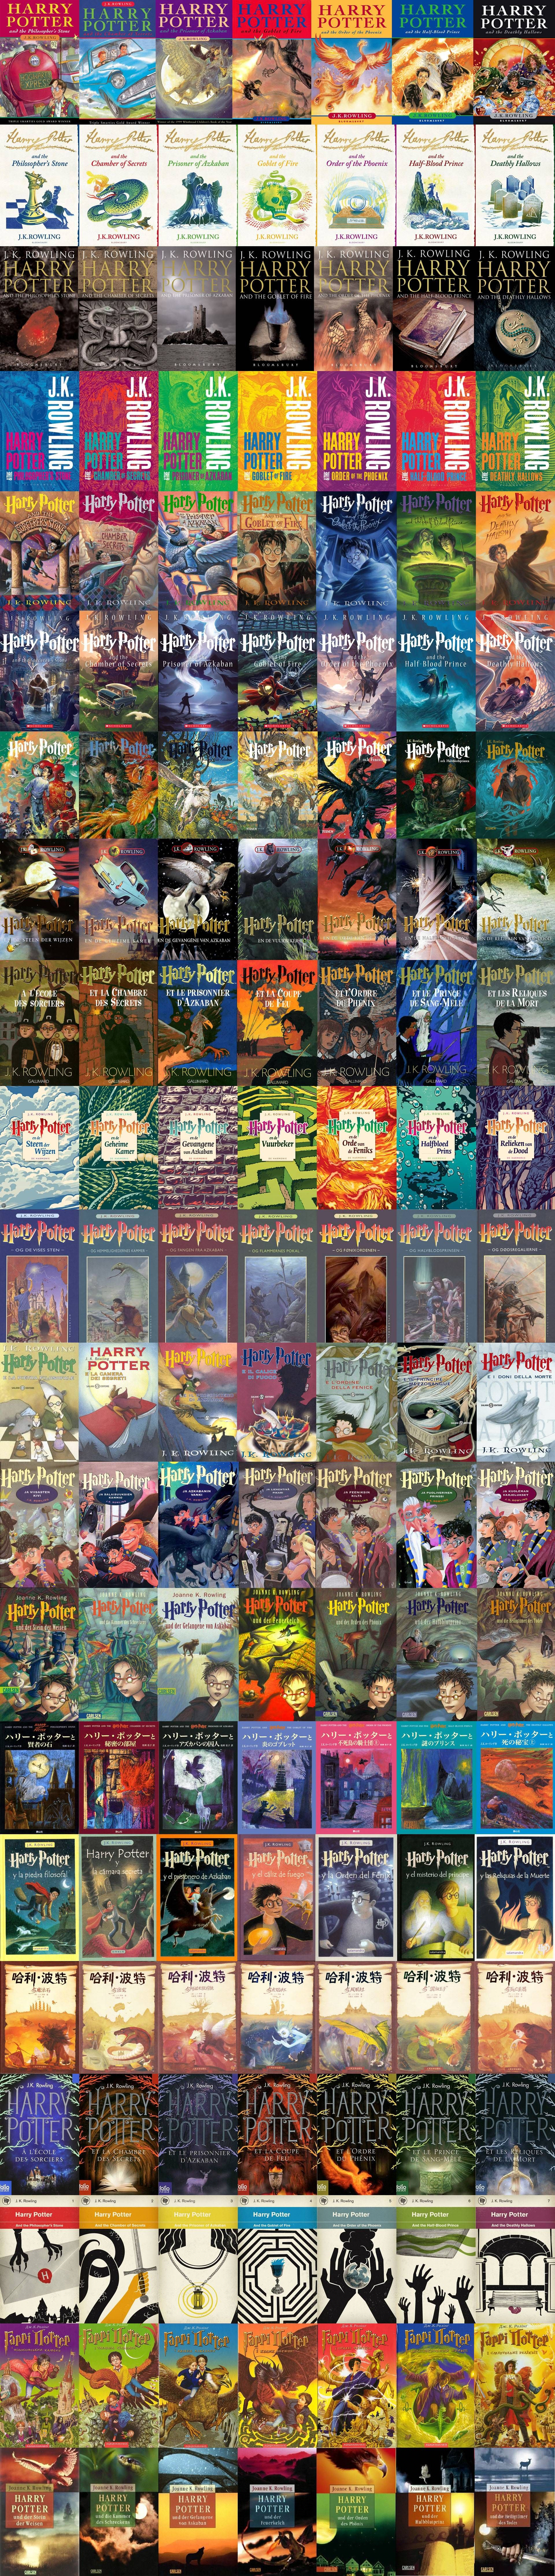 21 Different Cover Art Styles Of Harry Potter Cover Harry Potter Harry Potter Movies Harry Potter Book Covers